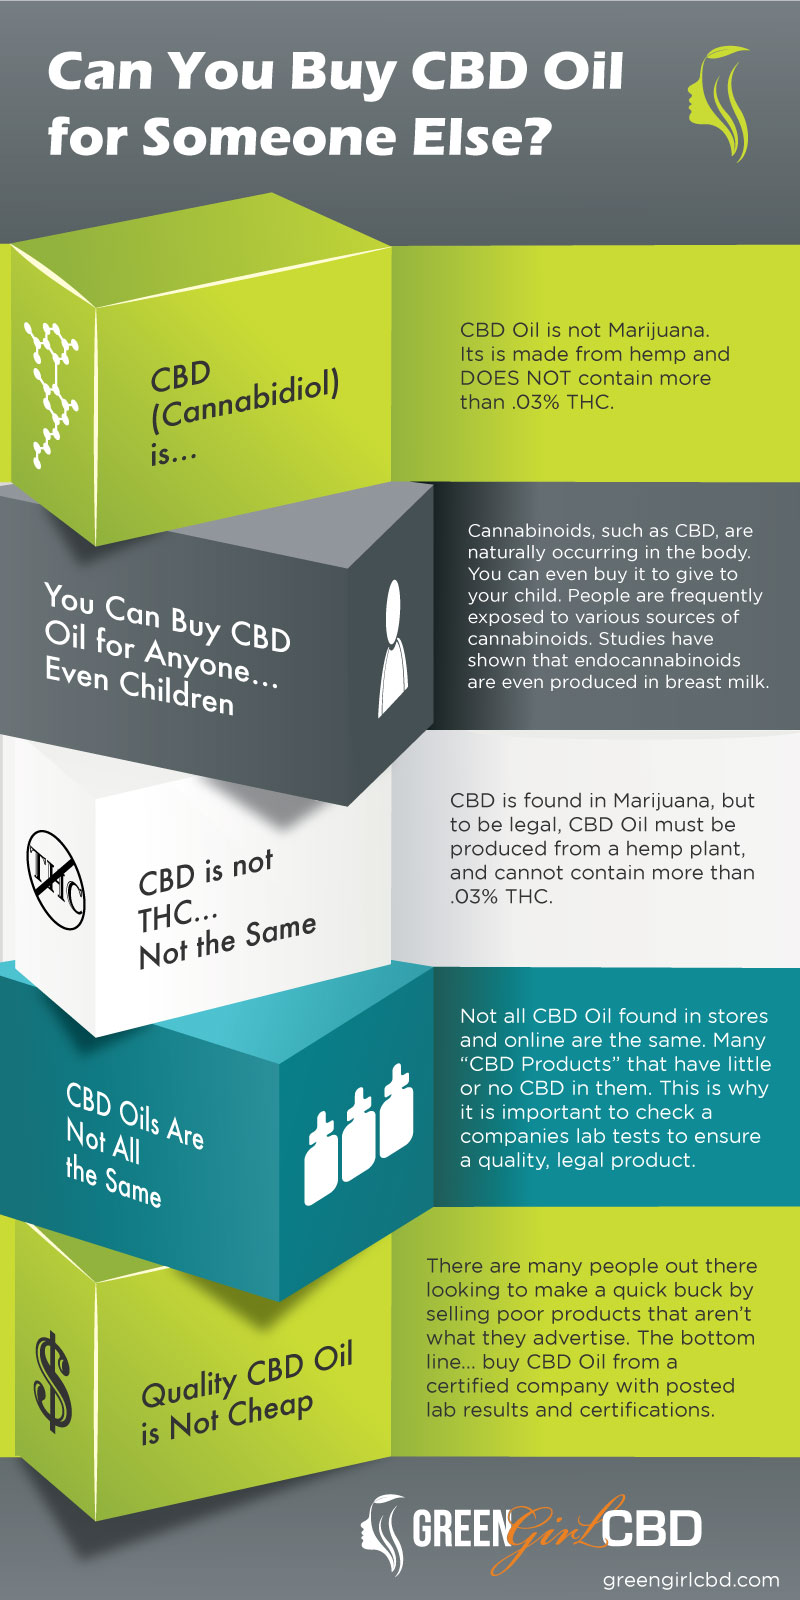 Can You Buy CBD Oil for Someone Else? • Answered Thoroughly